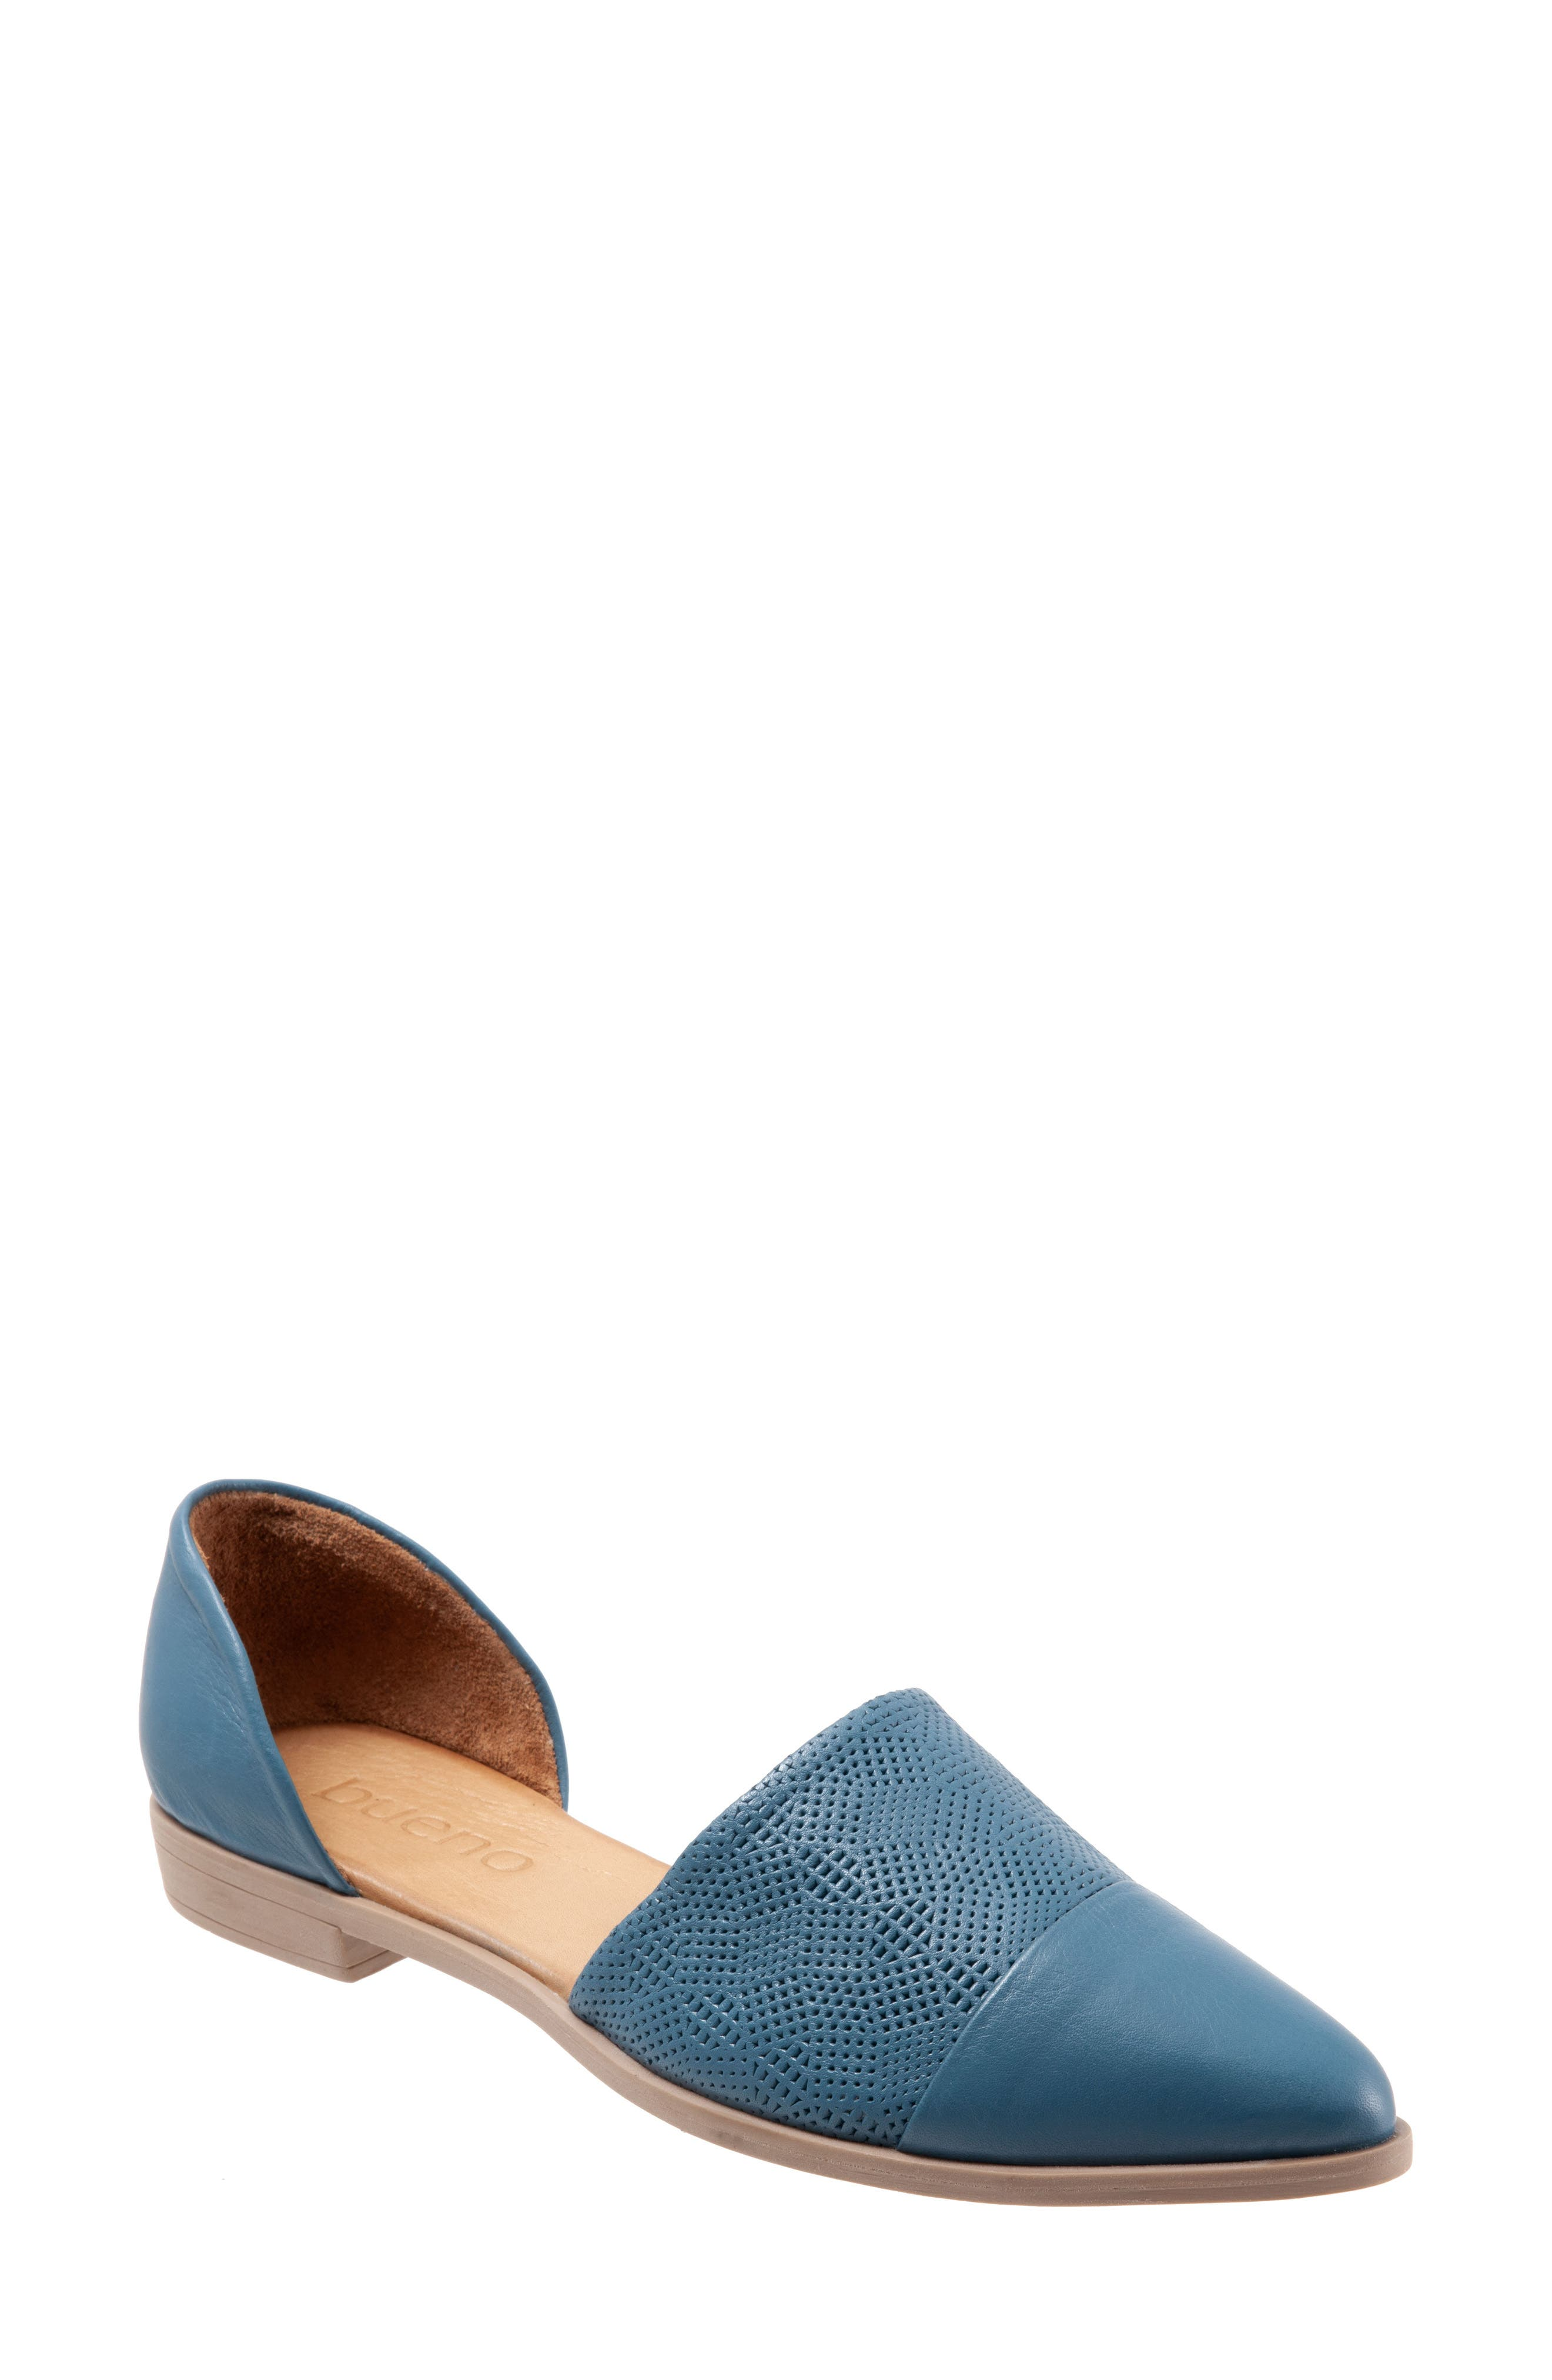 A classic d\\\'Orsay silhouette distinguishes a chic pointy-toe flat with a cushy footbed for endless, daylong comfort. Style Name: Bueno Bella D\\\'Orsay Flat (Women). Style Number: 5778823 2. Available in stores.